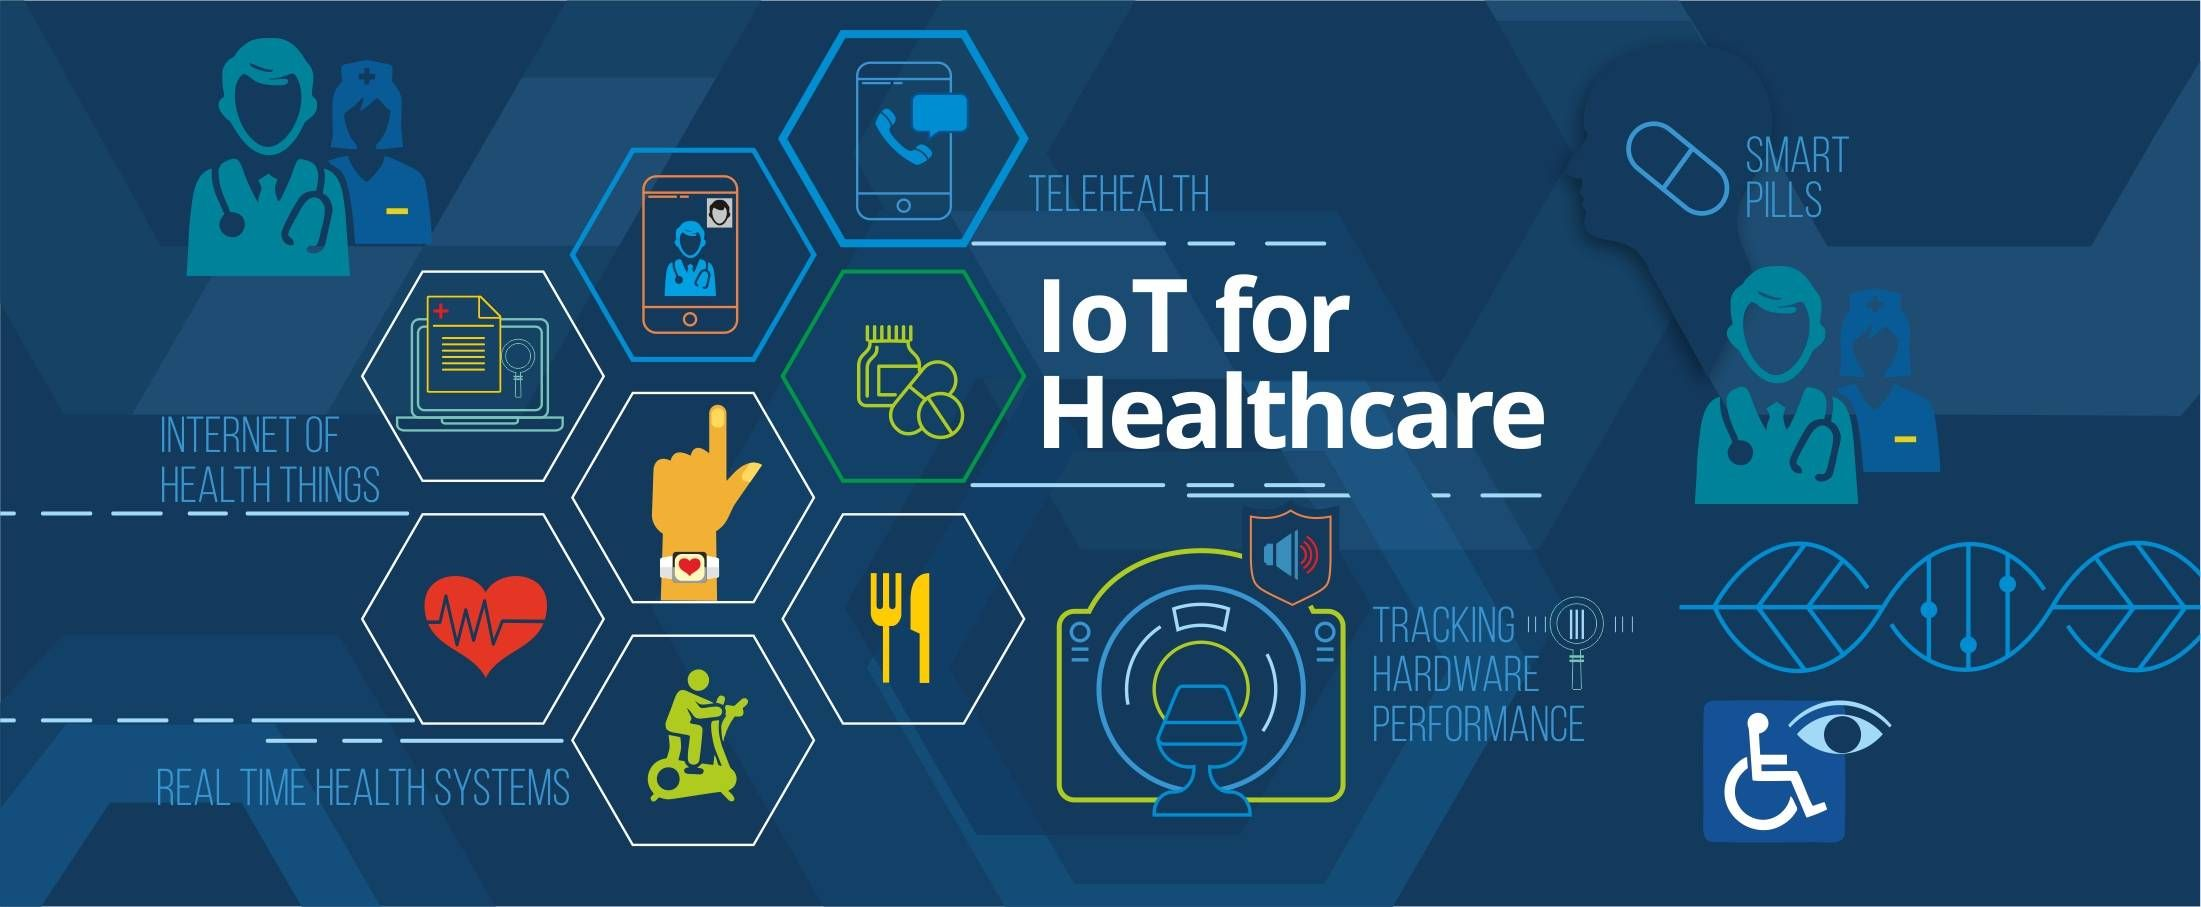 /using-iot-sensors-in-healthcare-to-stop-covid-19-4j931f6 feature image